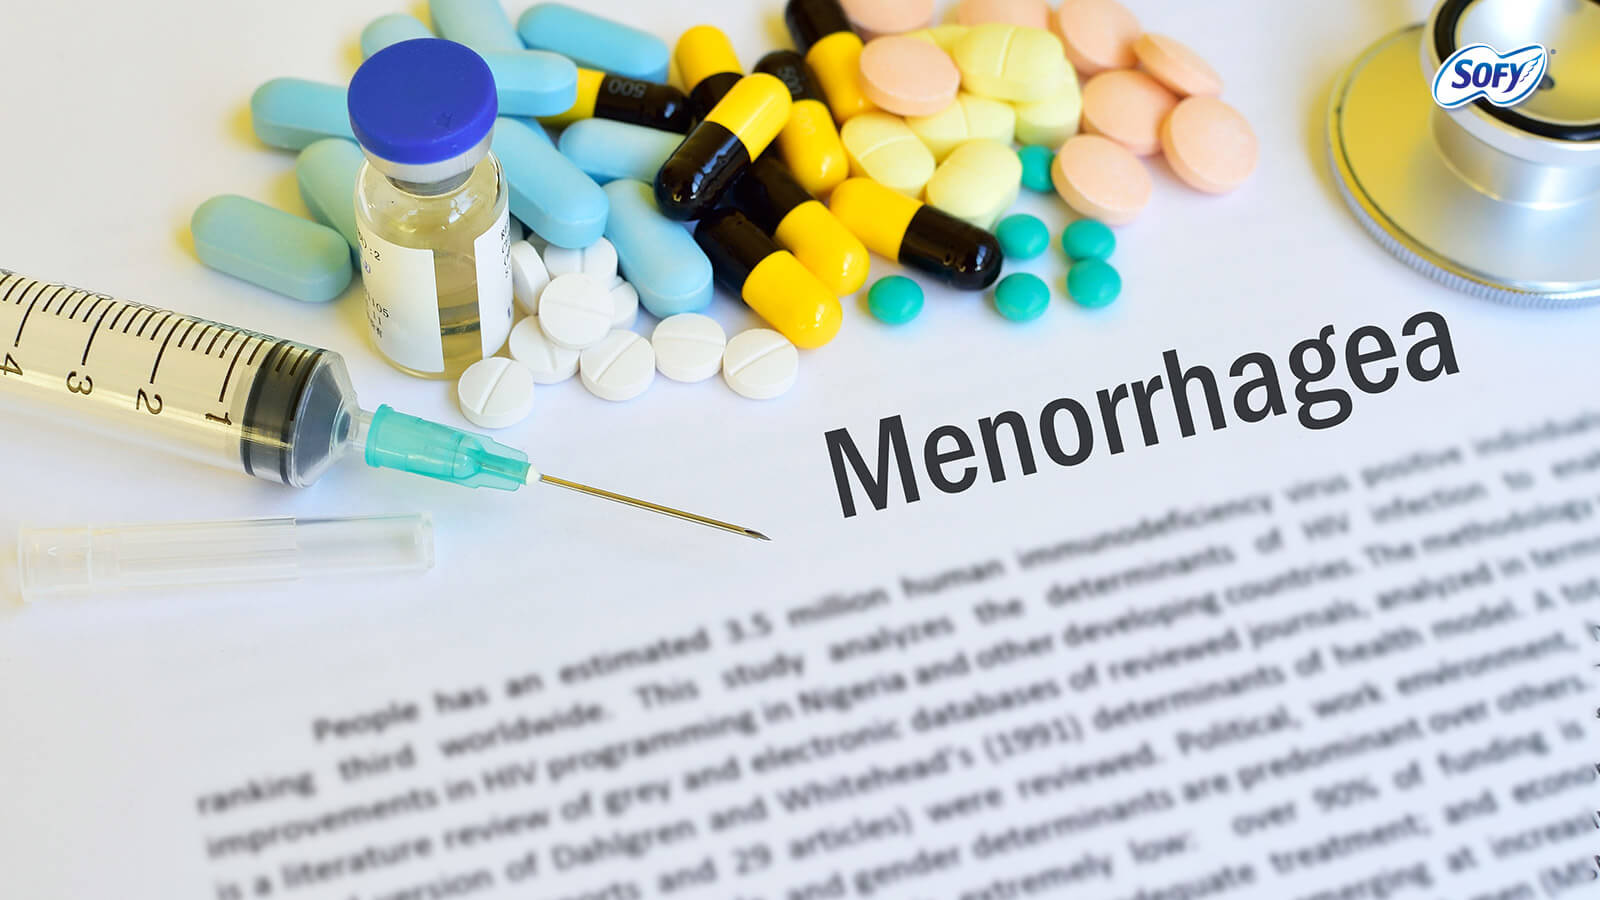 What is Menorrhagia (heavy bleeding) and ways of treating it.